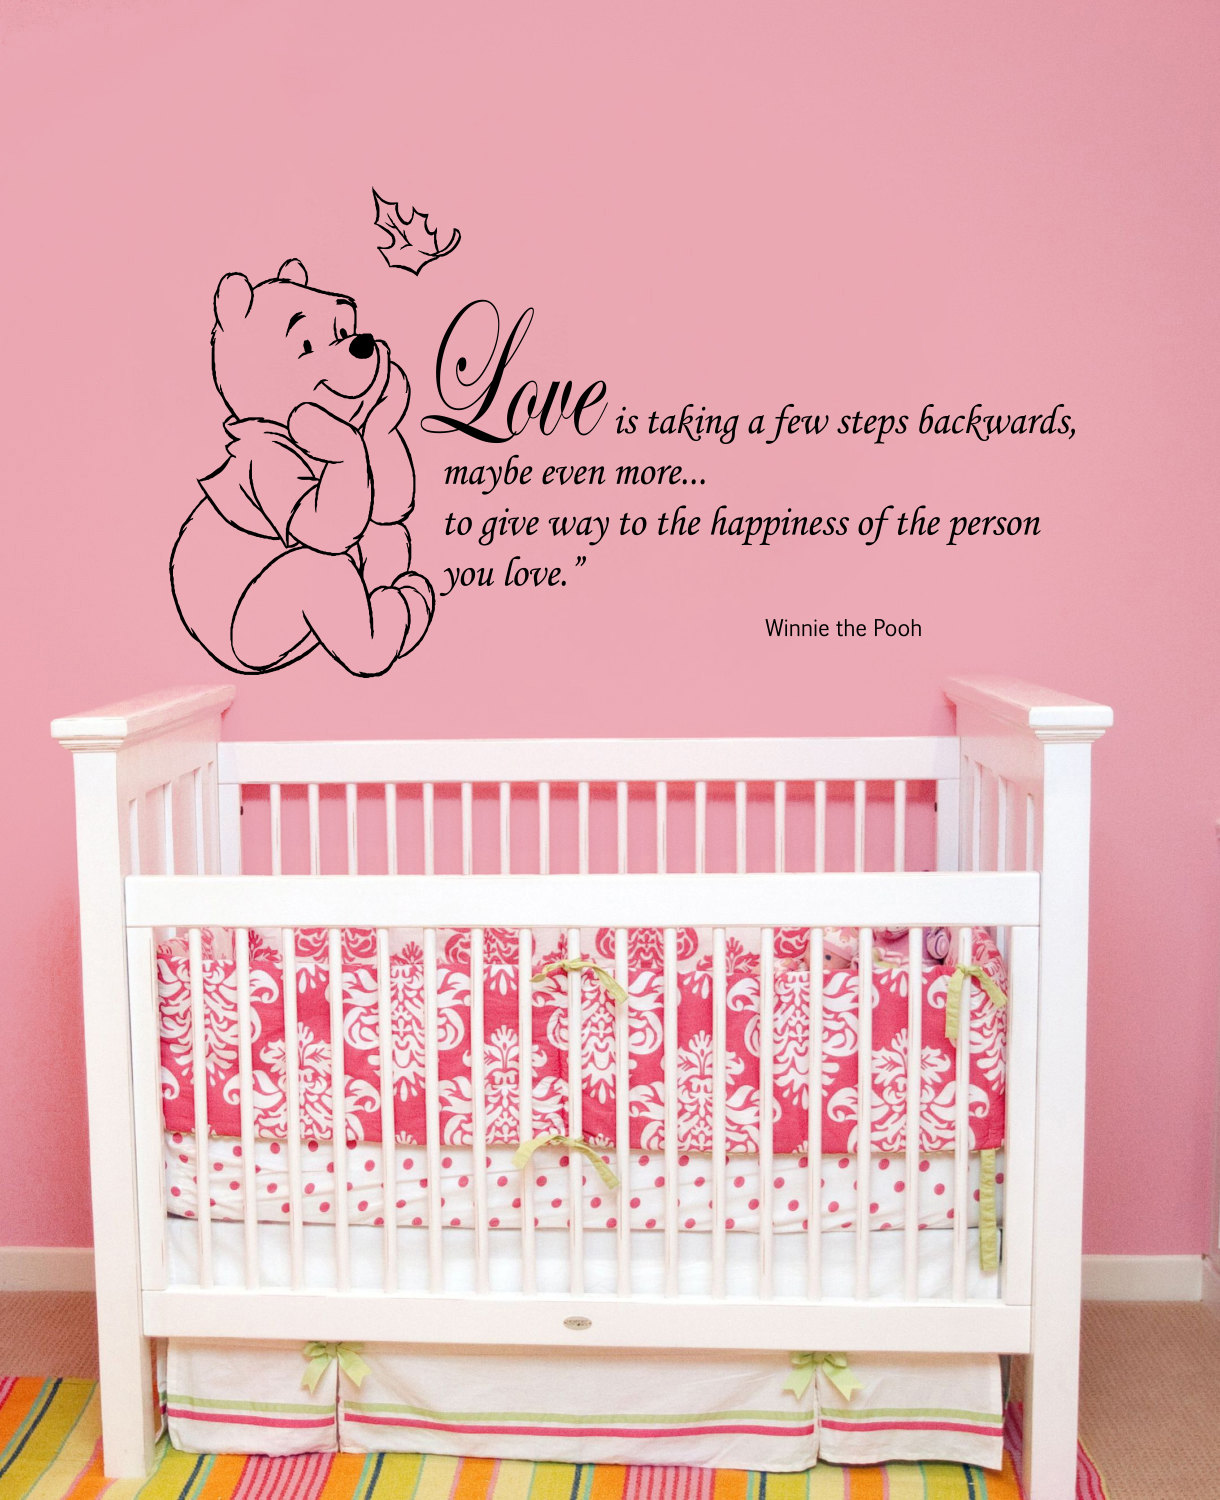 Winnie The Pooh Wall Quotes: Wall Decals Quotes Winnie The Pooh Wall Decal Quote By